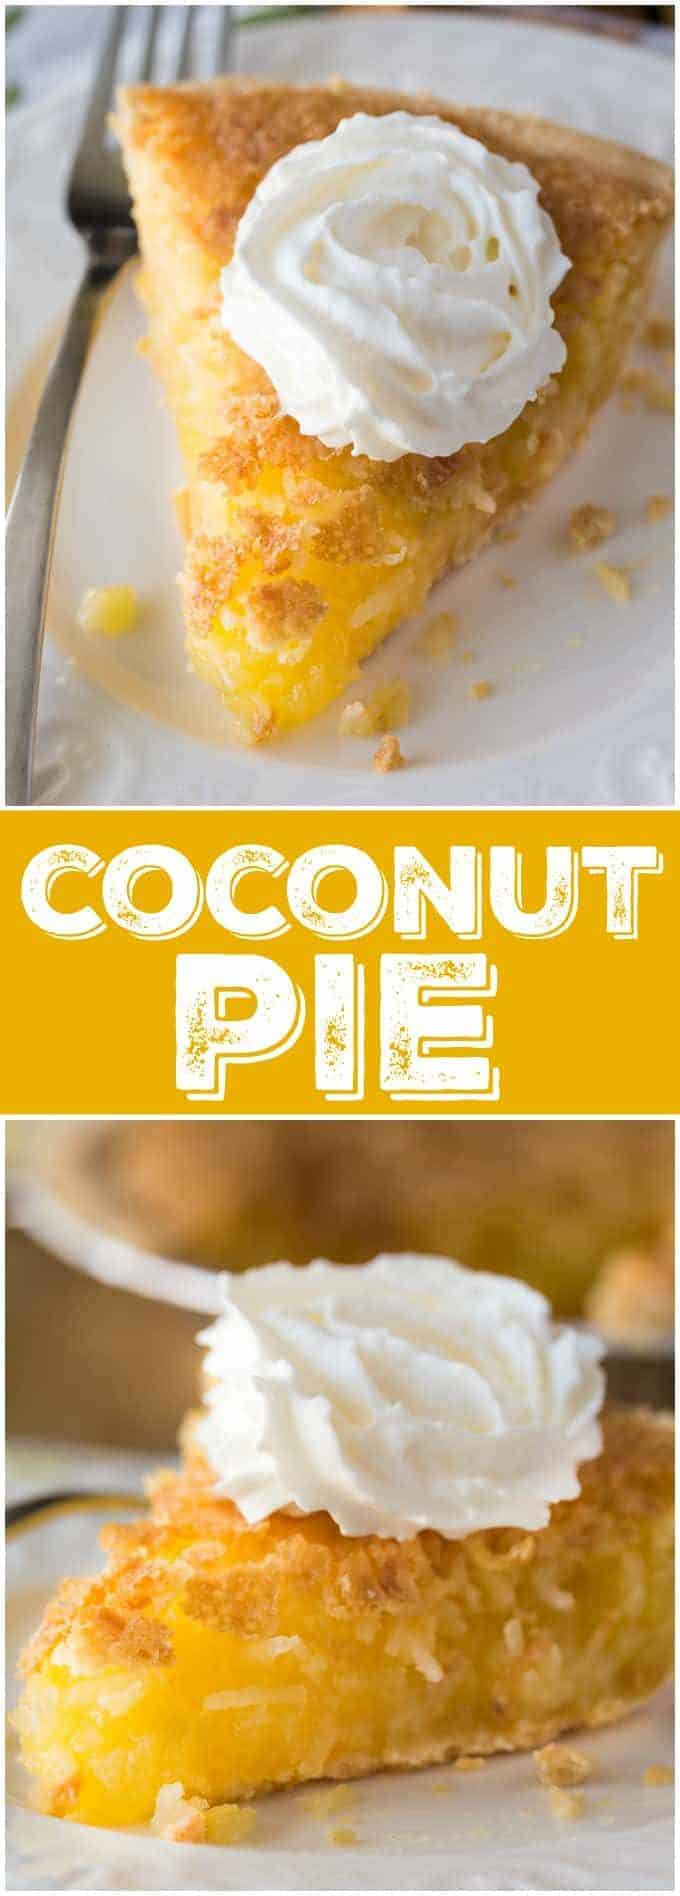 Old fashioned coconut cream pie from scratch To Die For Coconut Cream Pie - Beyond Frosting